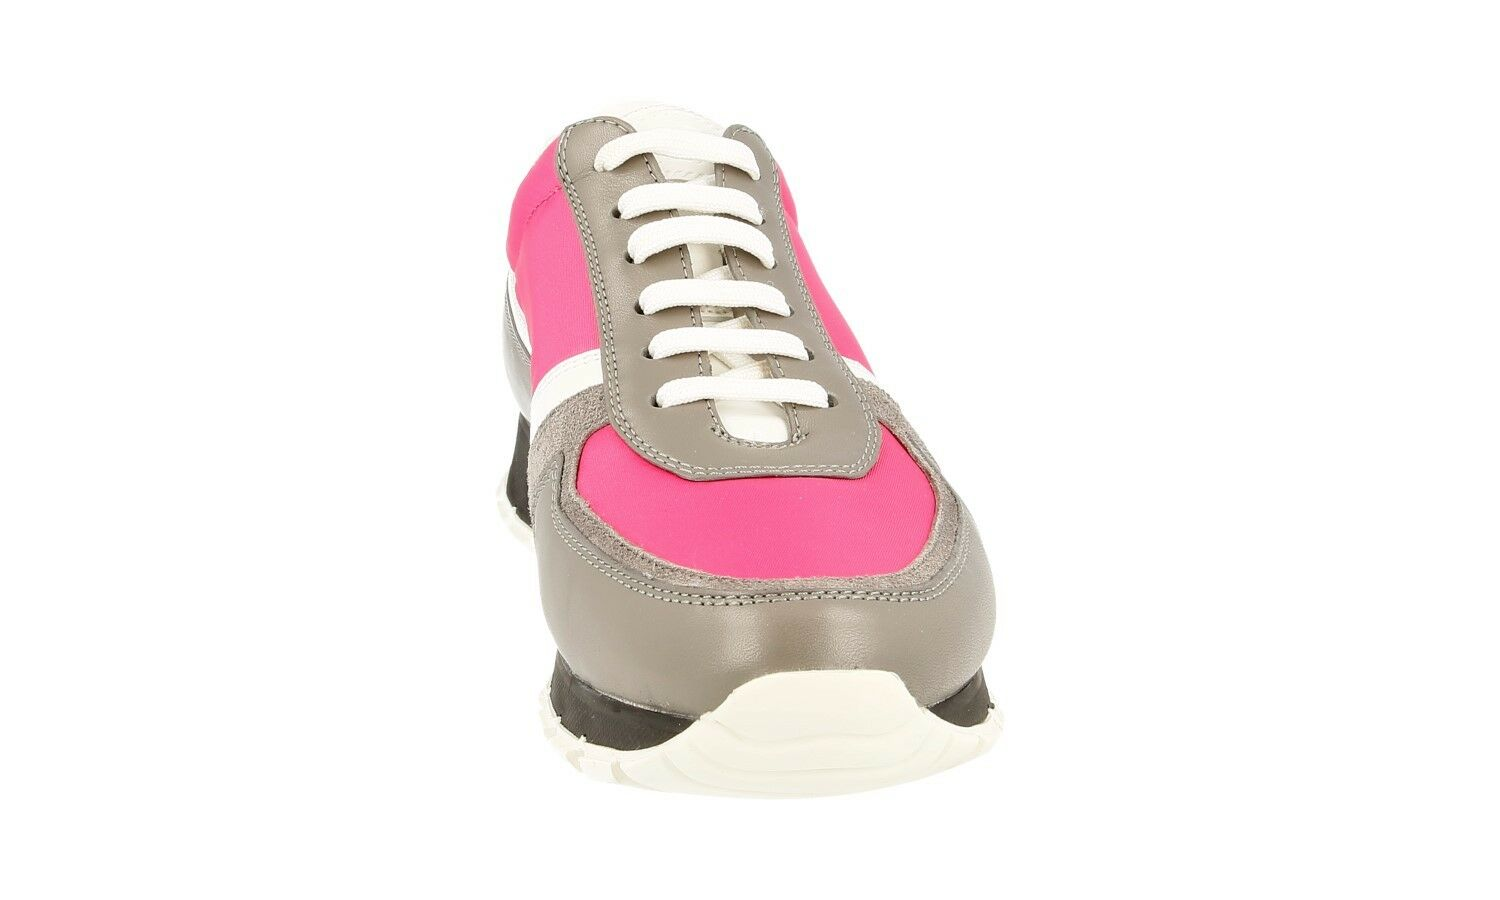 AUTH LUXURY PRADA SNEAKERS SHOES 3E6026 GREY PINK NEW NEW NEW 39,5 40 UK 6.5 0347a3